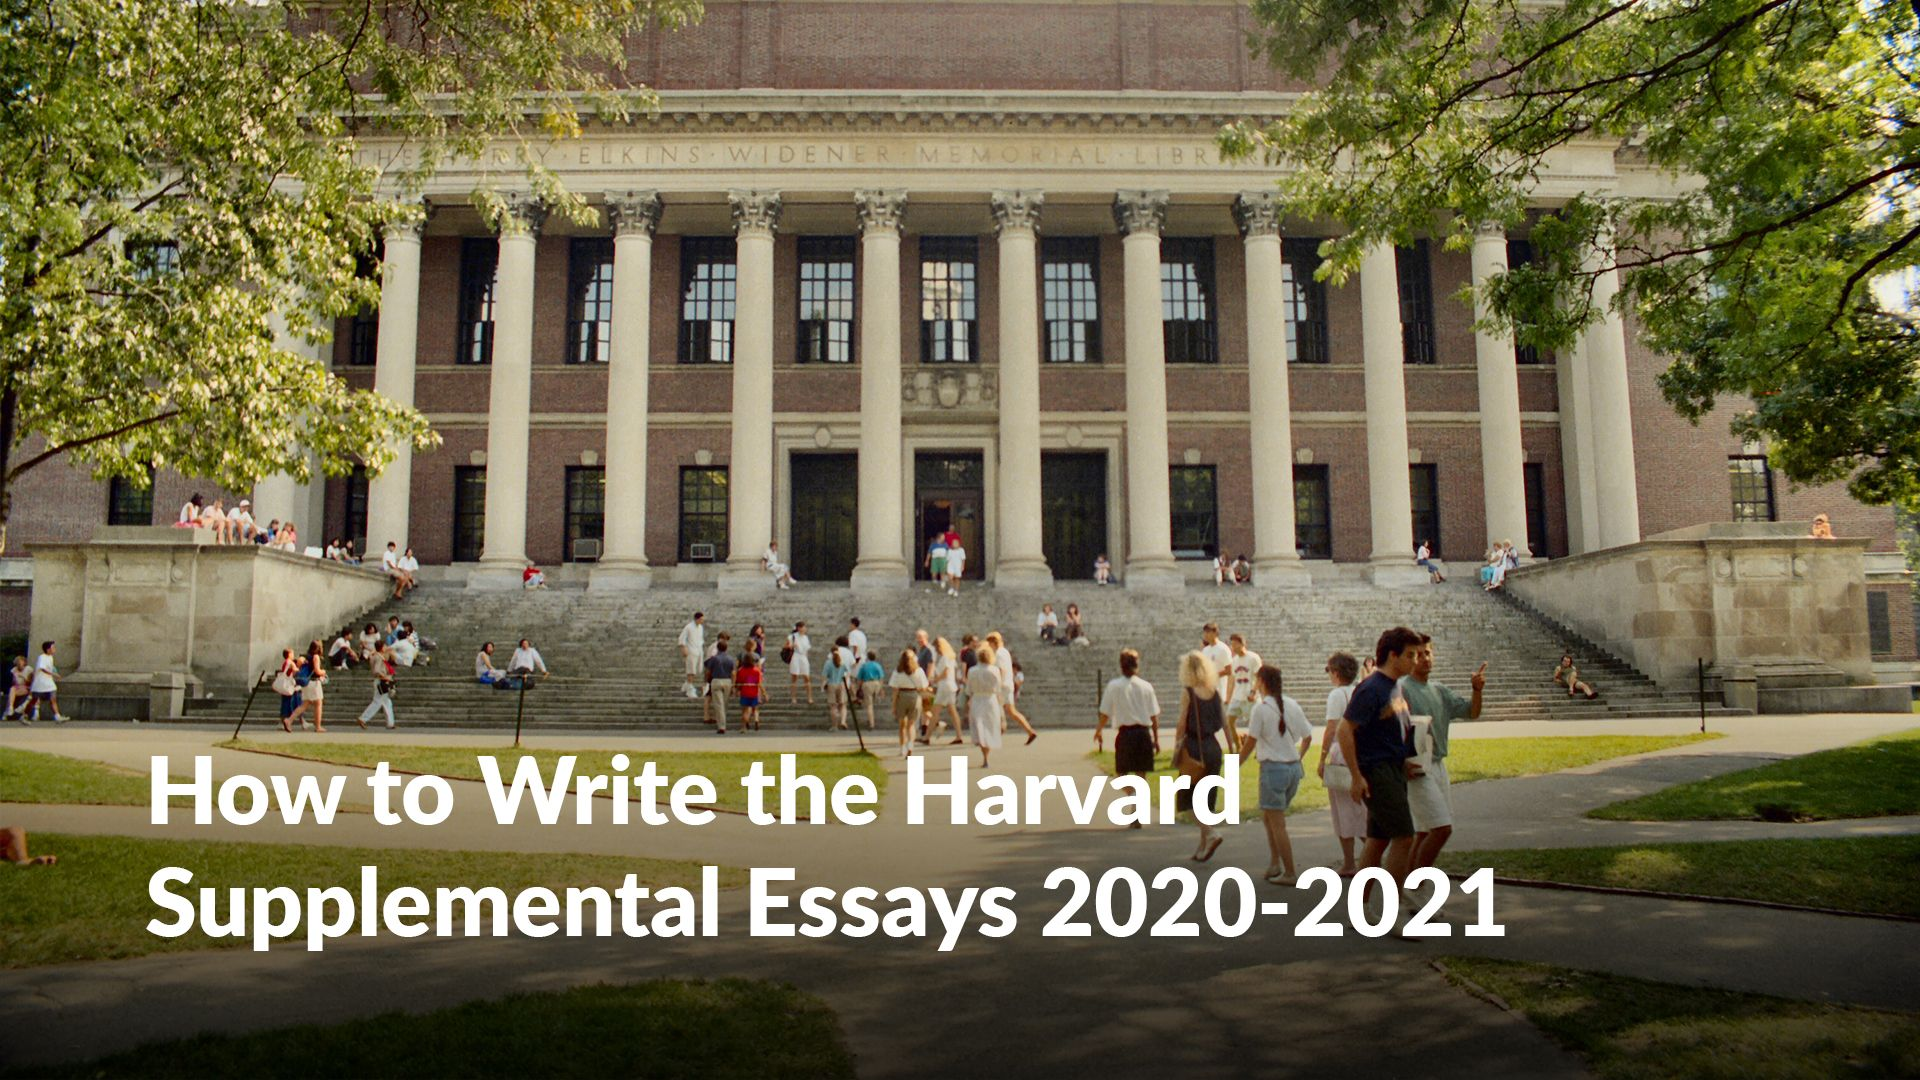 Full Size of To Write The Harvard Supplemental Essays Essay Topics Academic Template Word Simple 2021